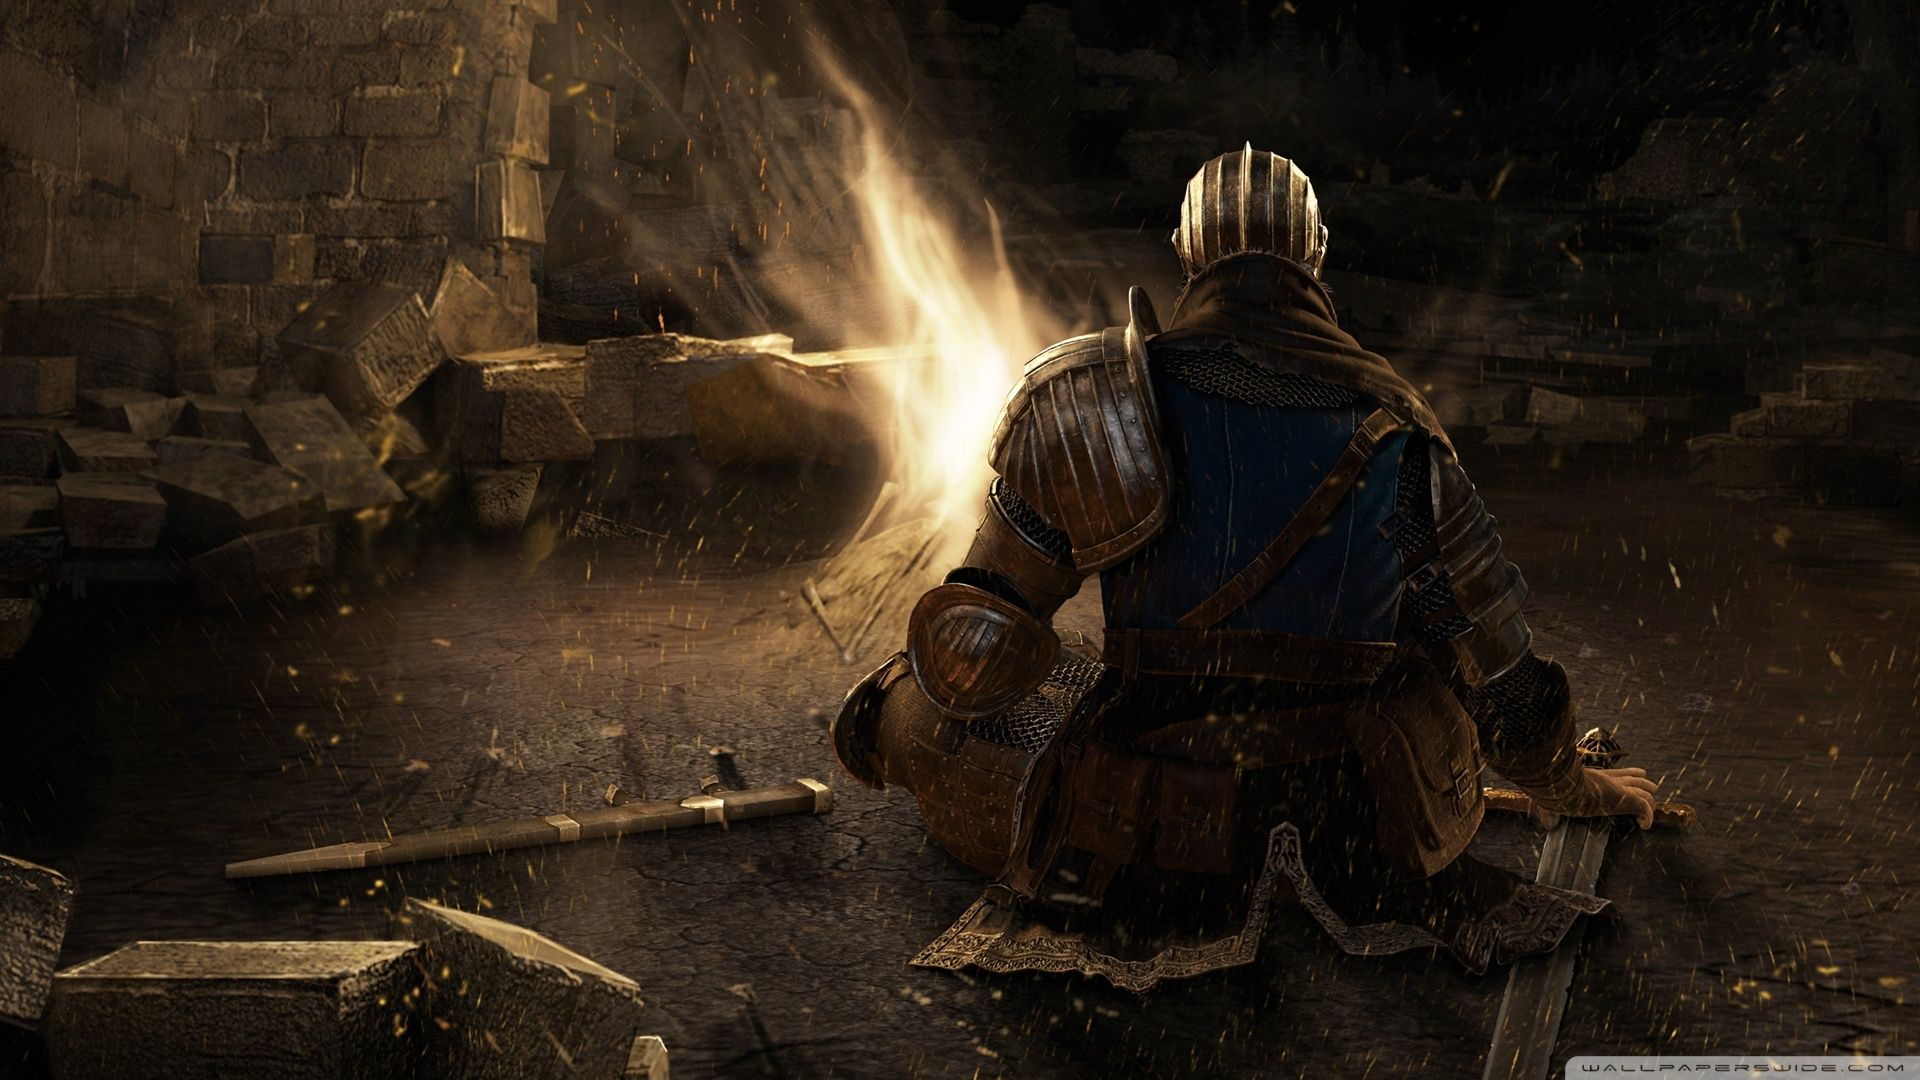 Dark Souls Art Wallpaper Dark Souls Dark Souls Art Dark Souls 2